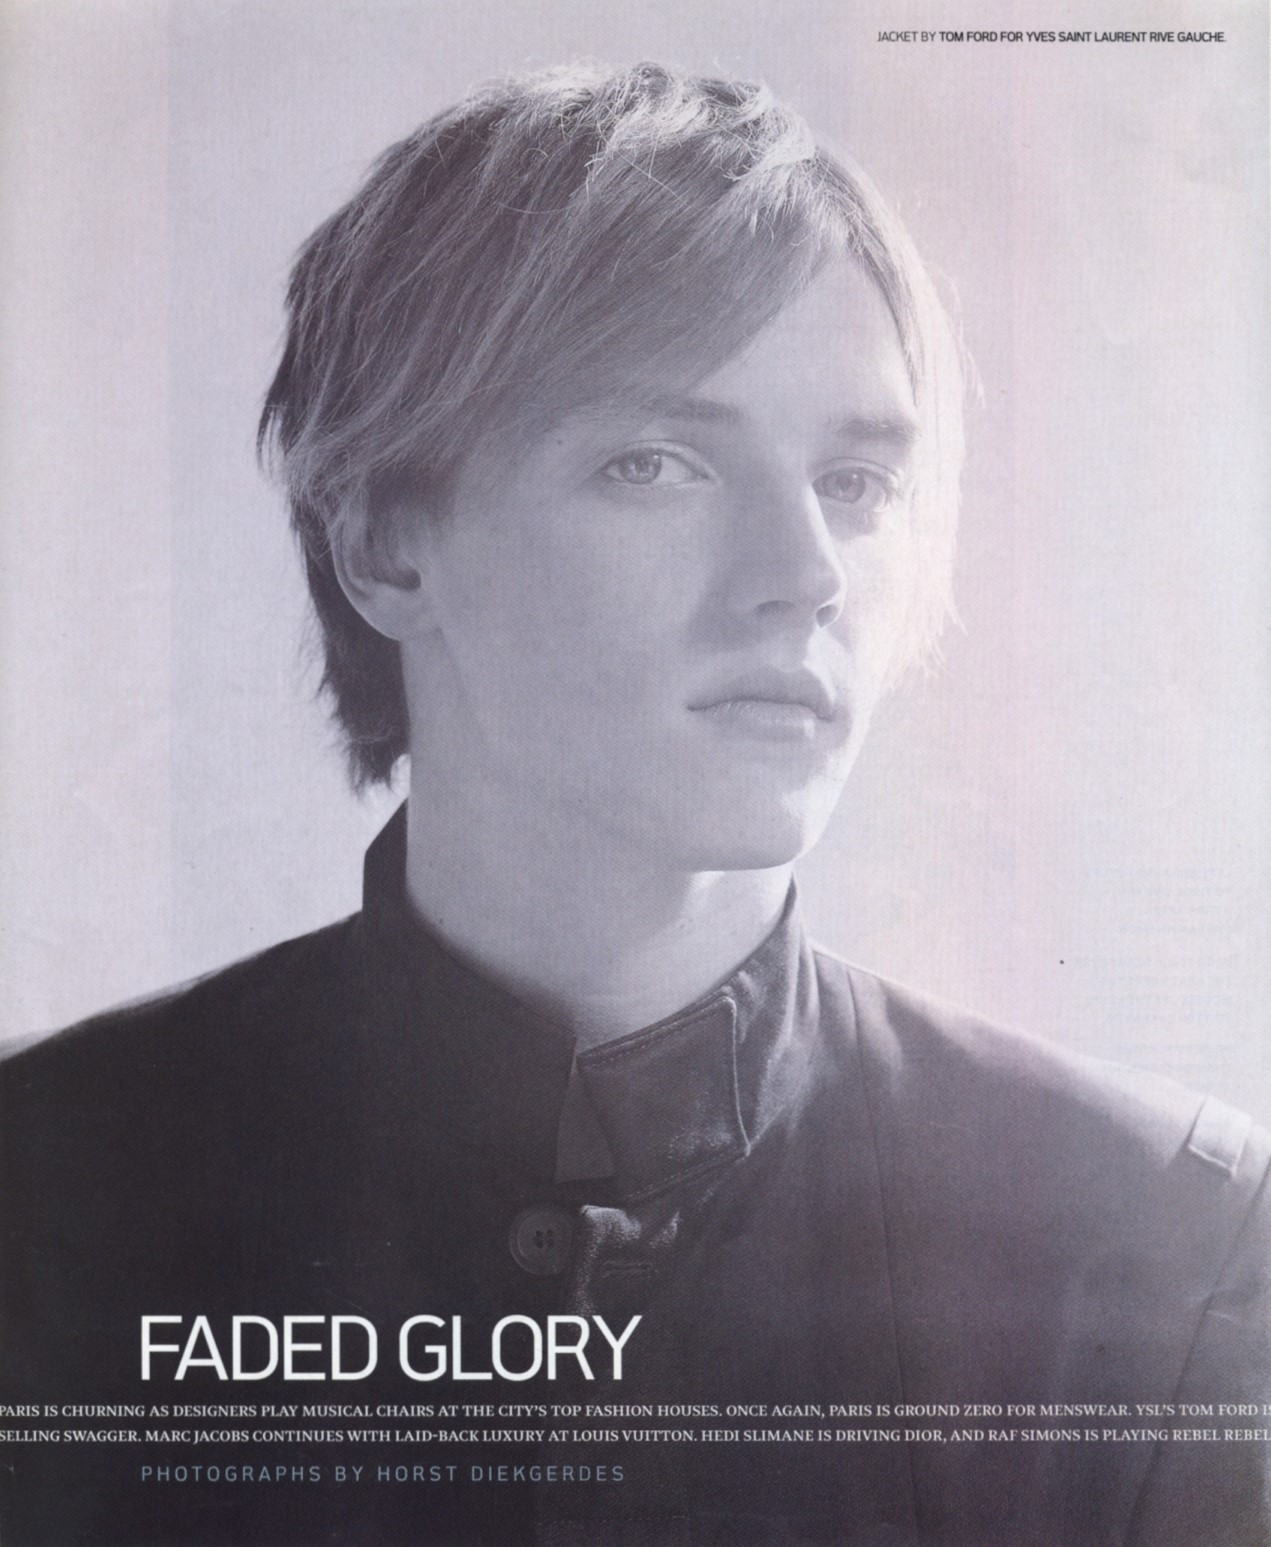 FADED GLORY | PHOTOGRAPHY HORST DIEKGERDES | DETAILS | MAY 2001